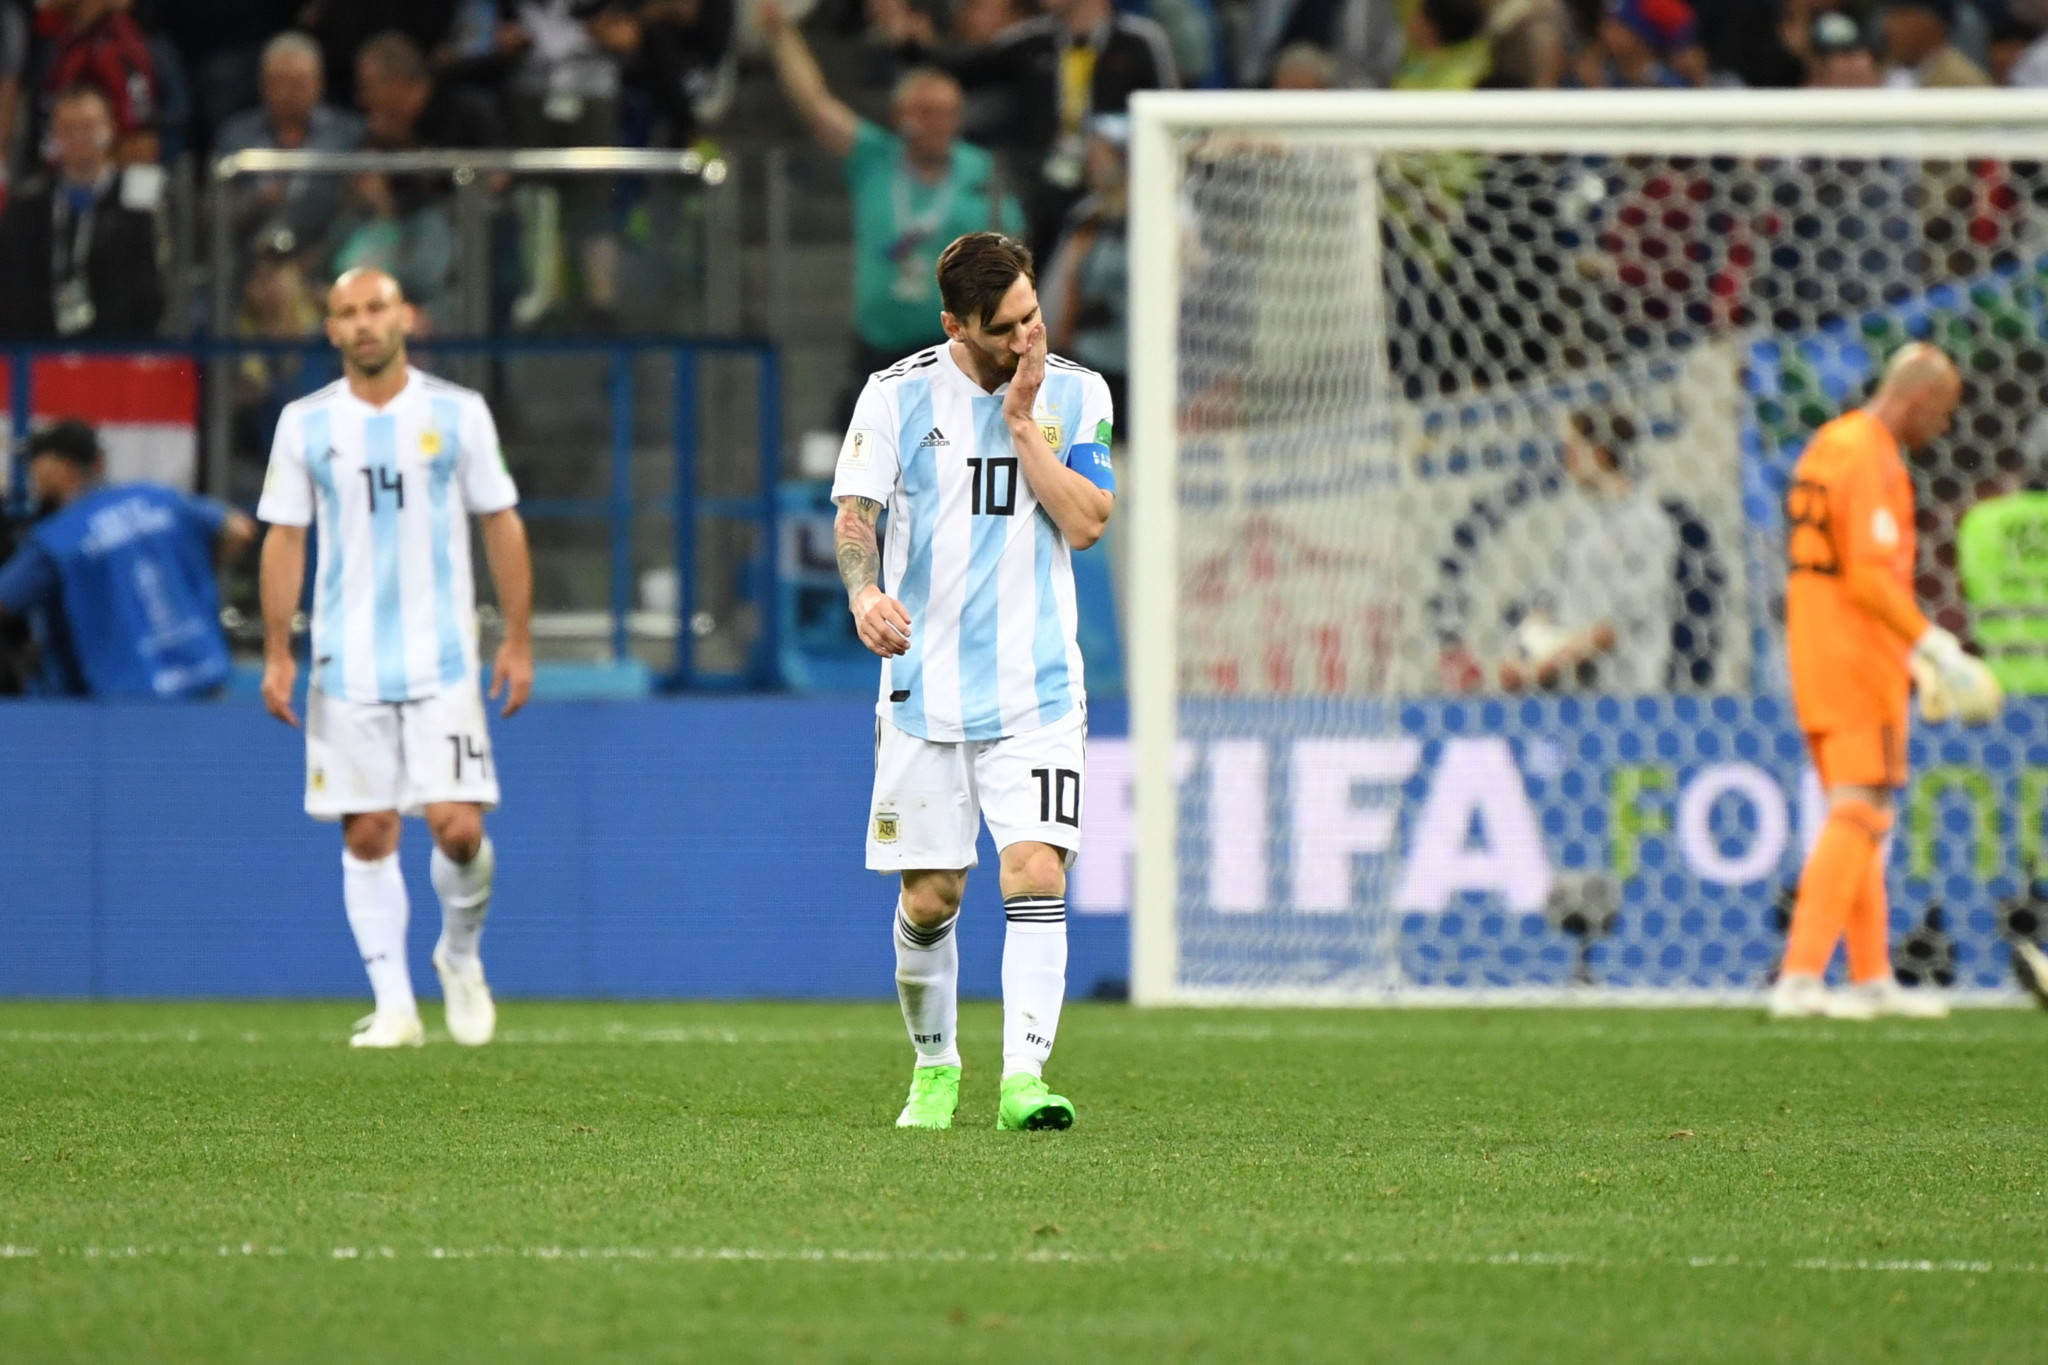 Star man Lionel Messi was helpless as Argentina lost 3-0 to Croatia today to leave them on the brink of elimination from the 2018 FIFA World Cup in Russia ©Getty Images